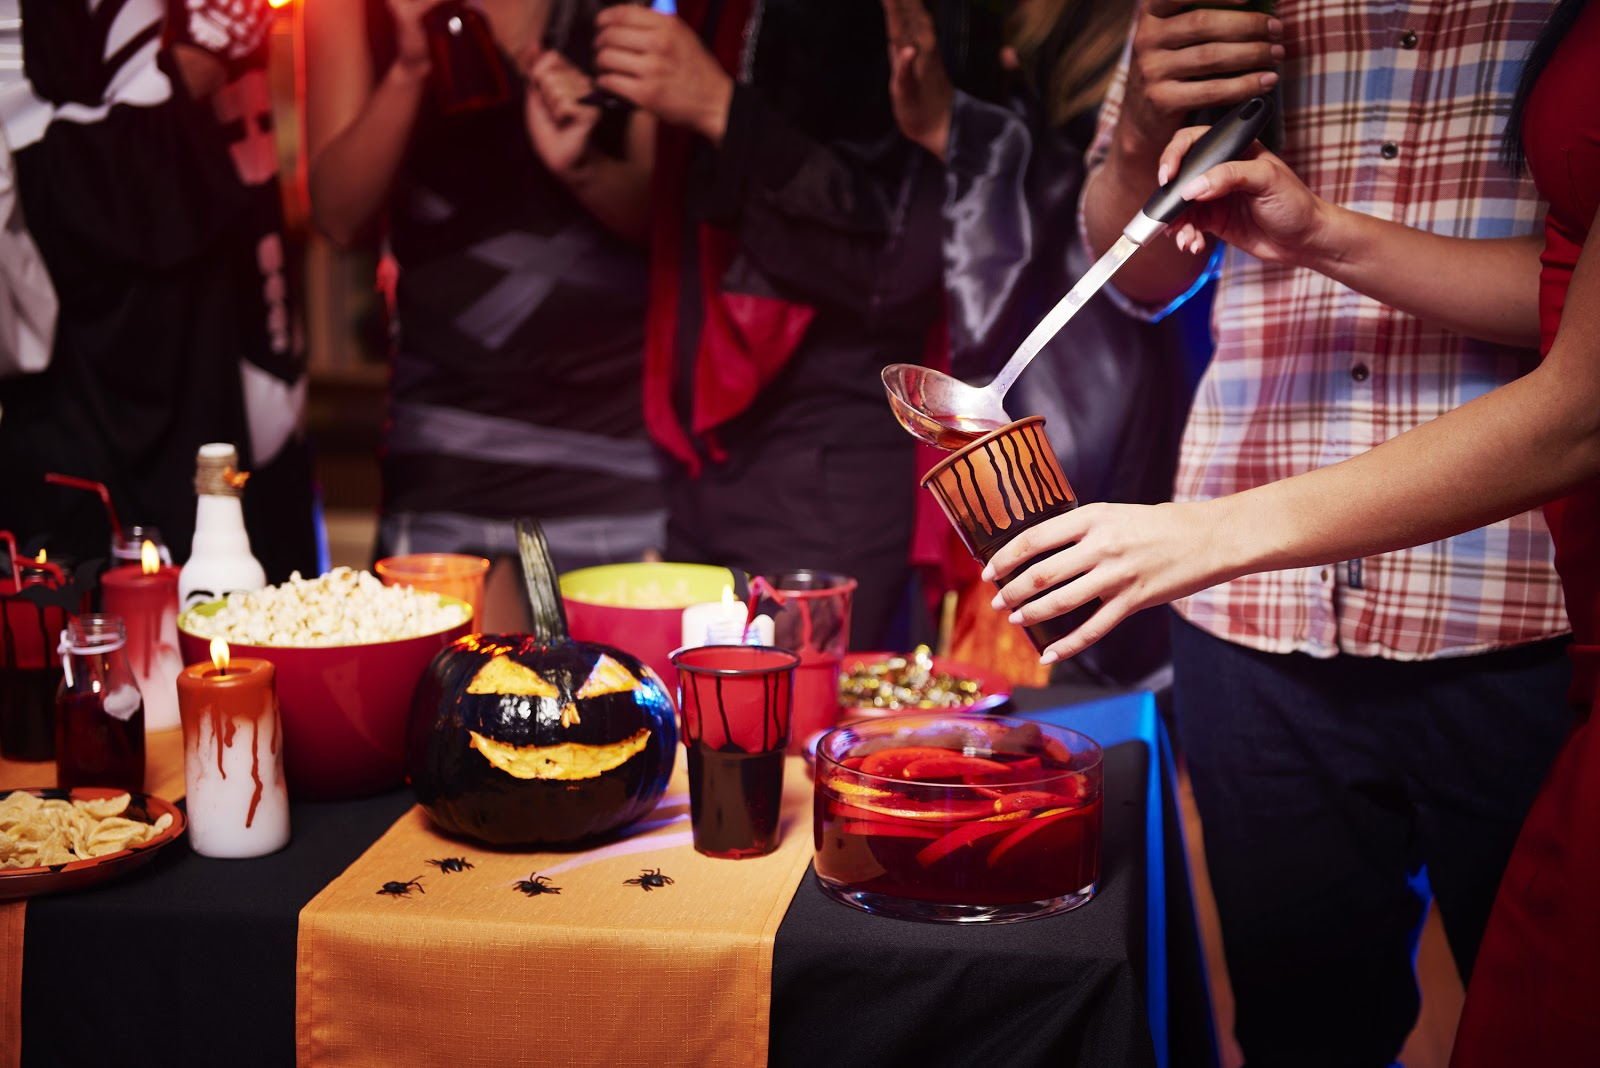 Party goers pour punch while discussing Halloween party ideas.